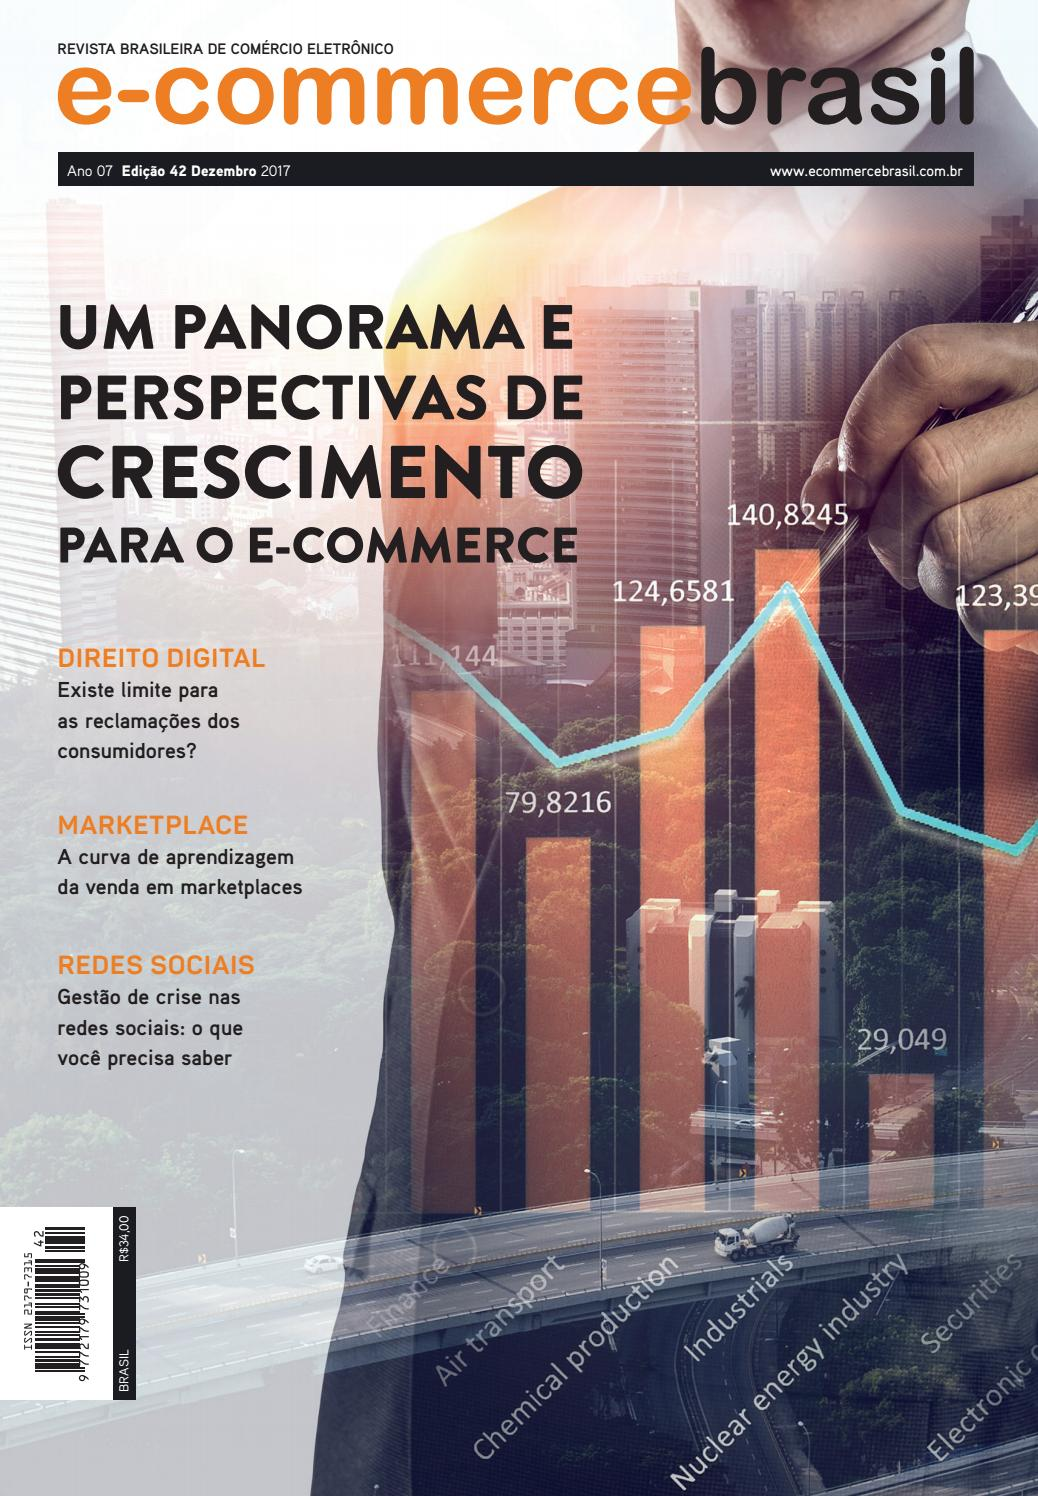 c5e212314dbe8 Revista e commerce brasil 42 isuu by E-Commerce Brasil - issuu